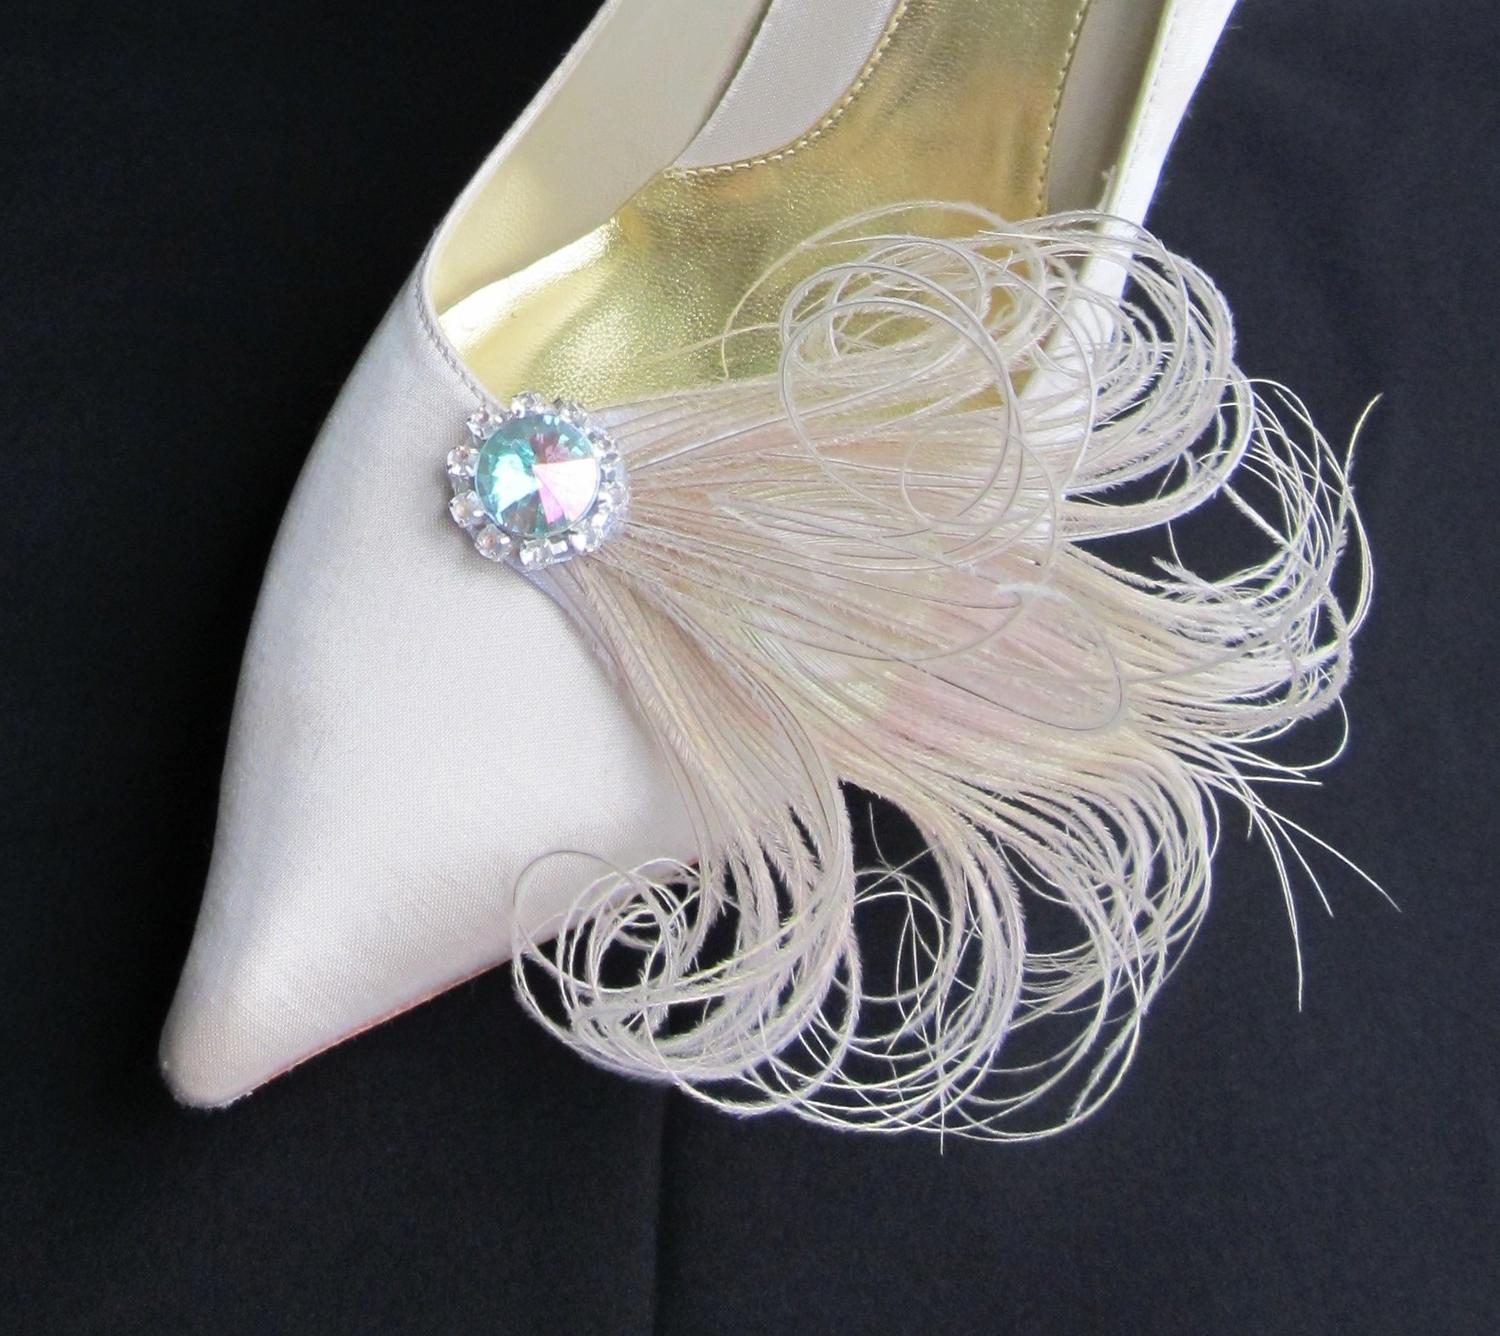 Ivory Peacock Feathers Wedding Shoe Clips. From Chuletindesigns